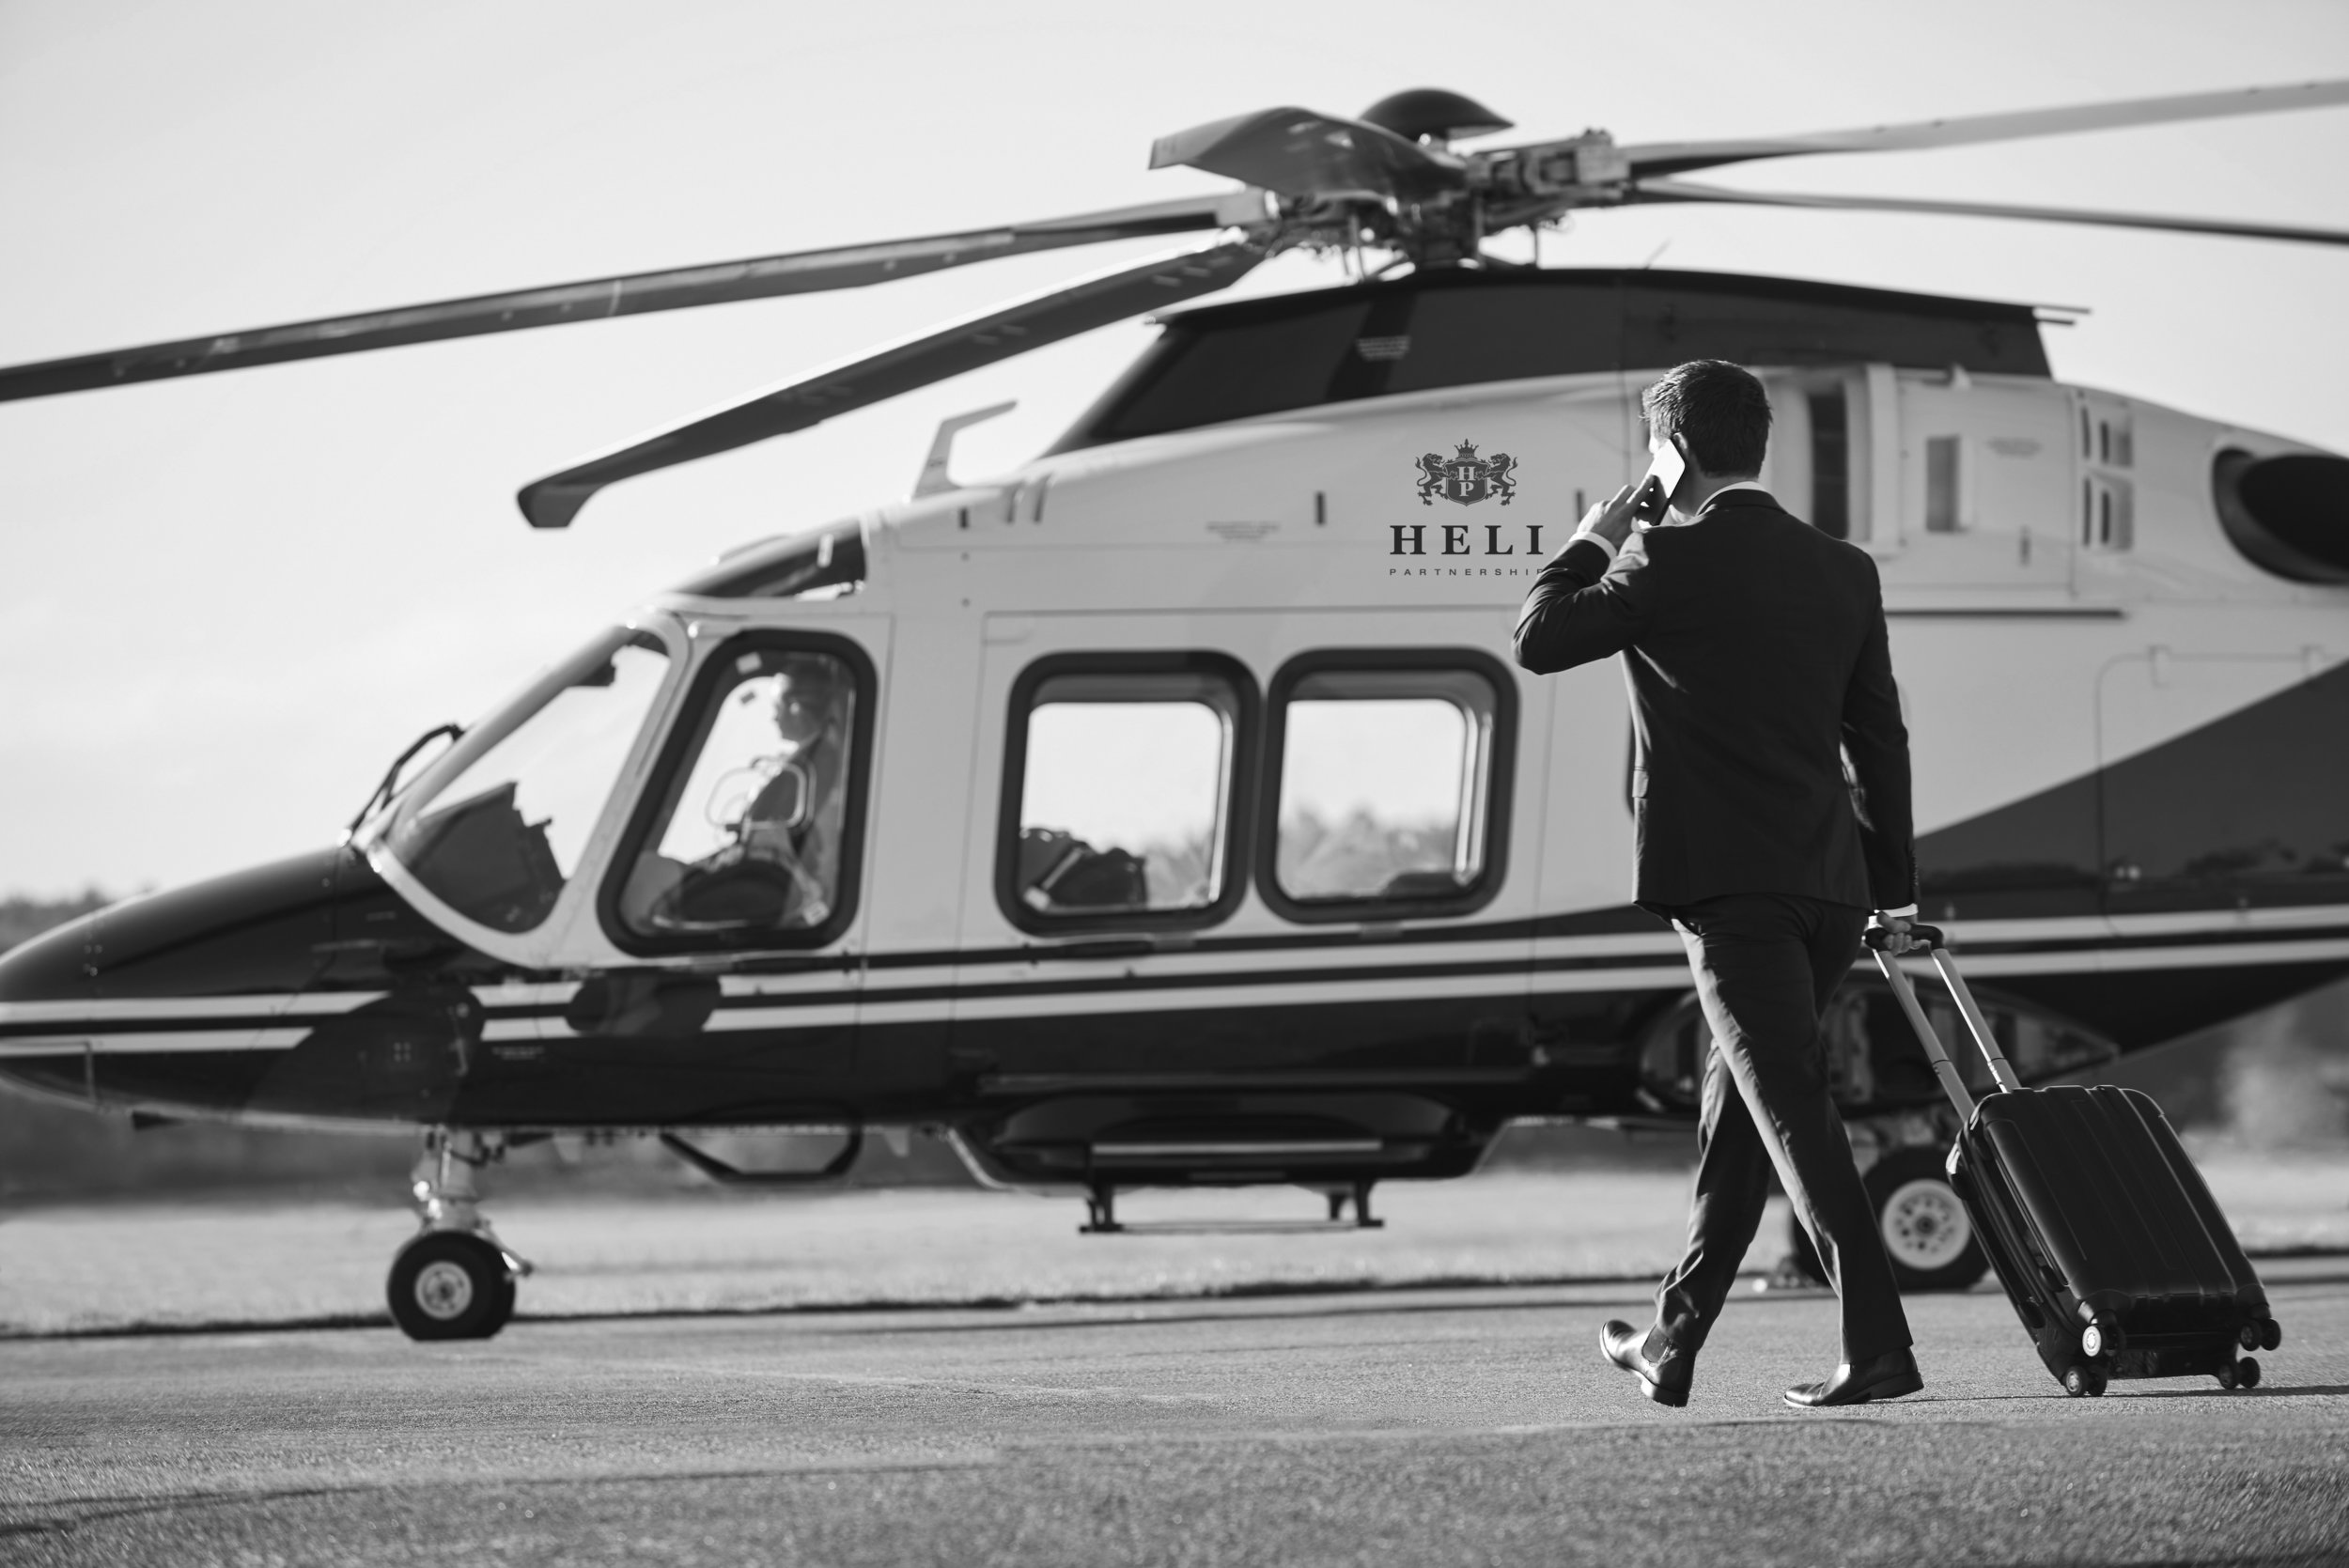 Business Helicopter Charter - A business helicopter charter can not only be a time efficient way of getting from meeting to meeting but also a comfortable, work efficient and cost effective method of transportation.